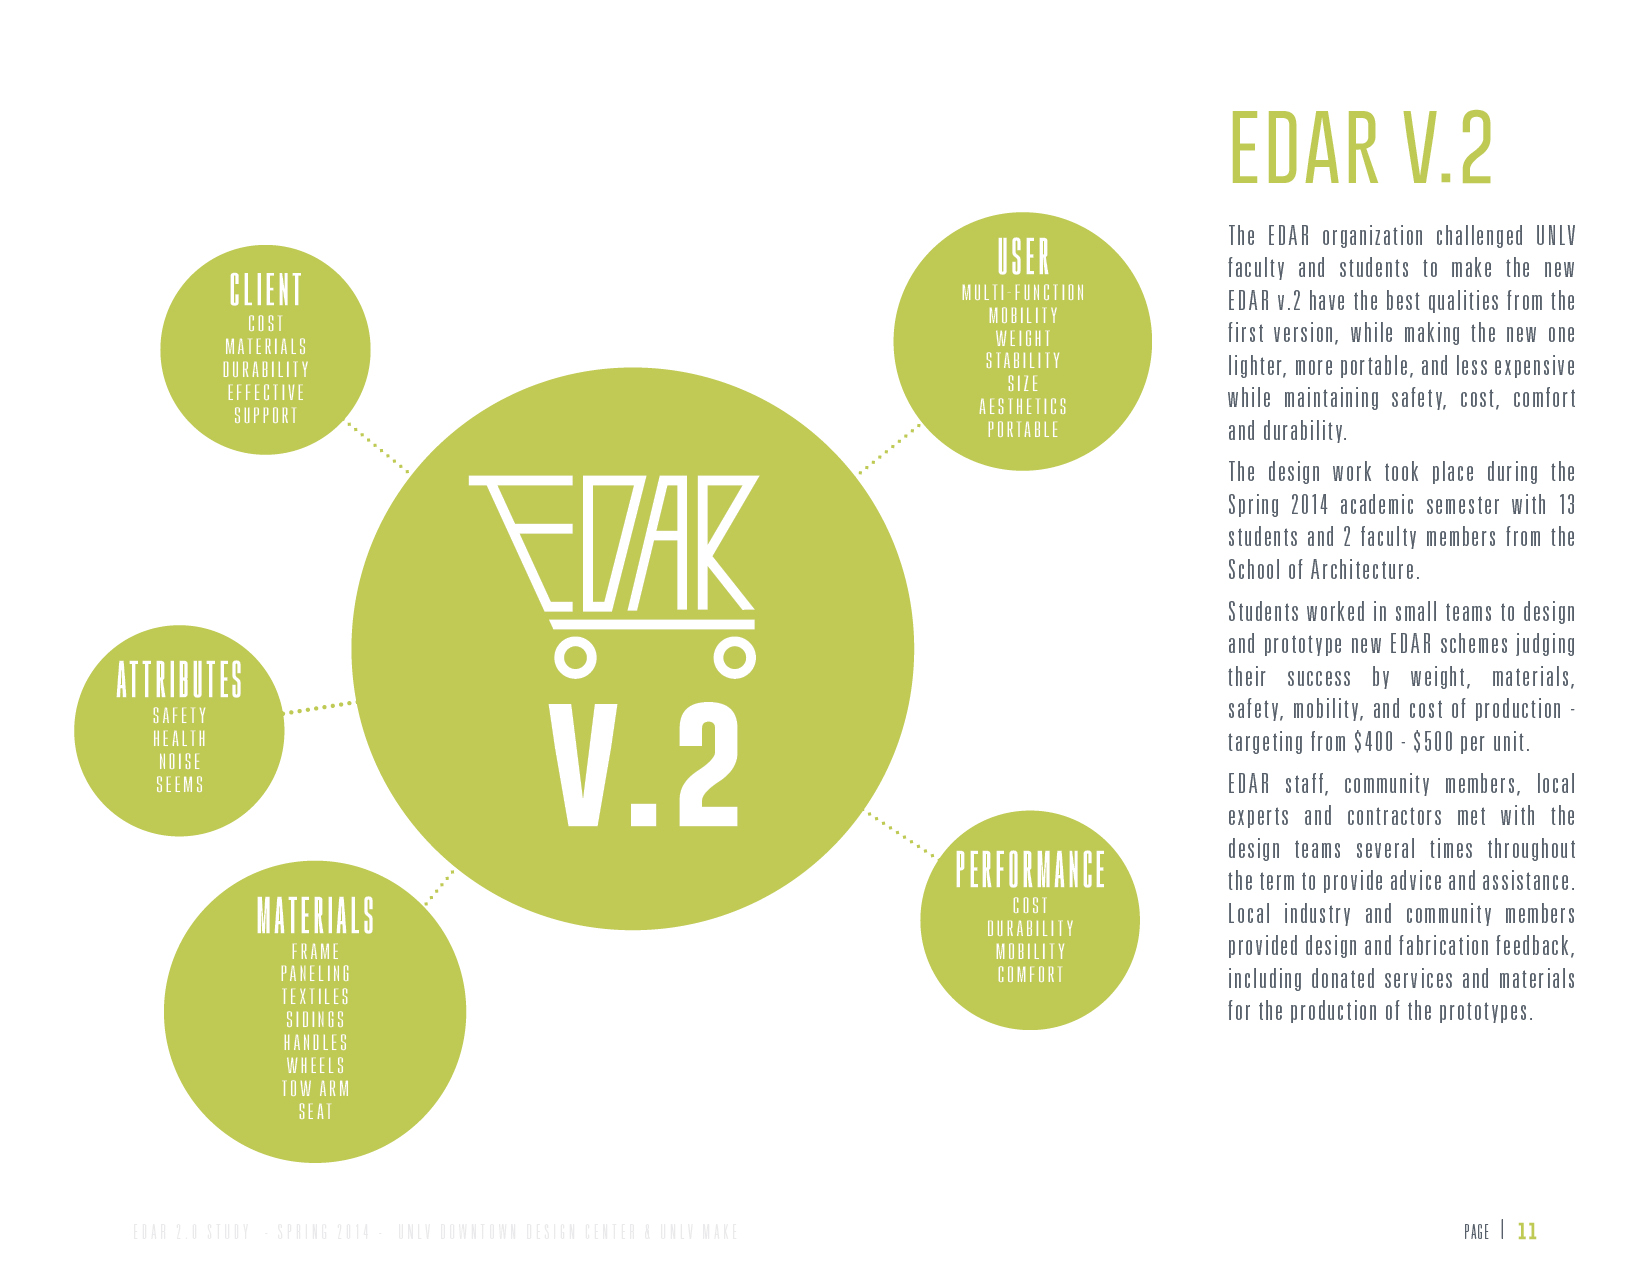 Setting up the design guidelines for EDAR 2.0